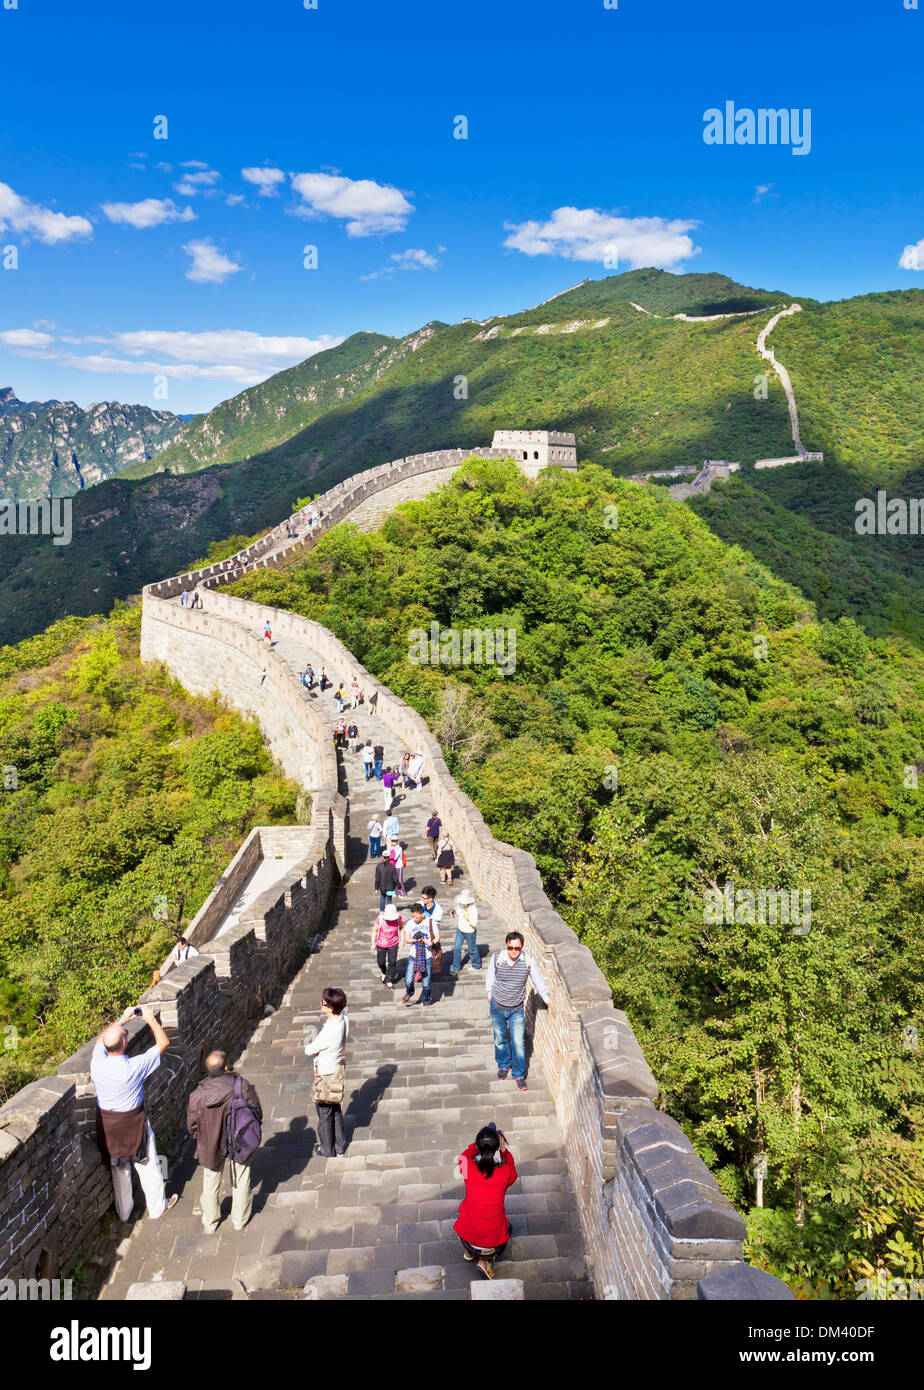 Les touristes qui visitent la Grande Muraille de Chine, Site du patrimoine mondial de l'UNESCO, District de Mutianyu, Beijing, China, Asia Photo Stock